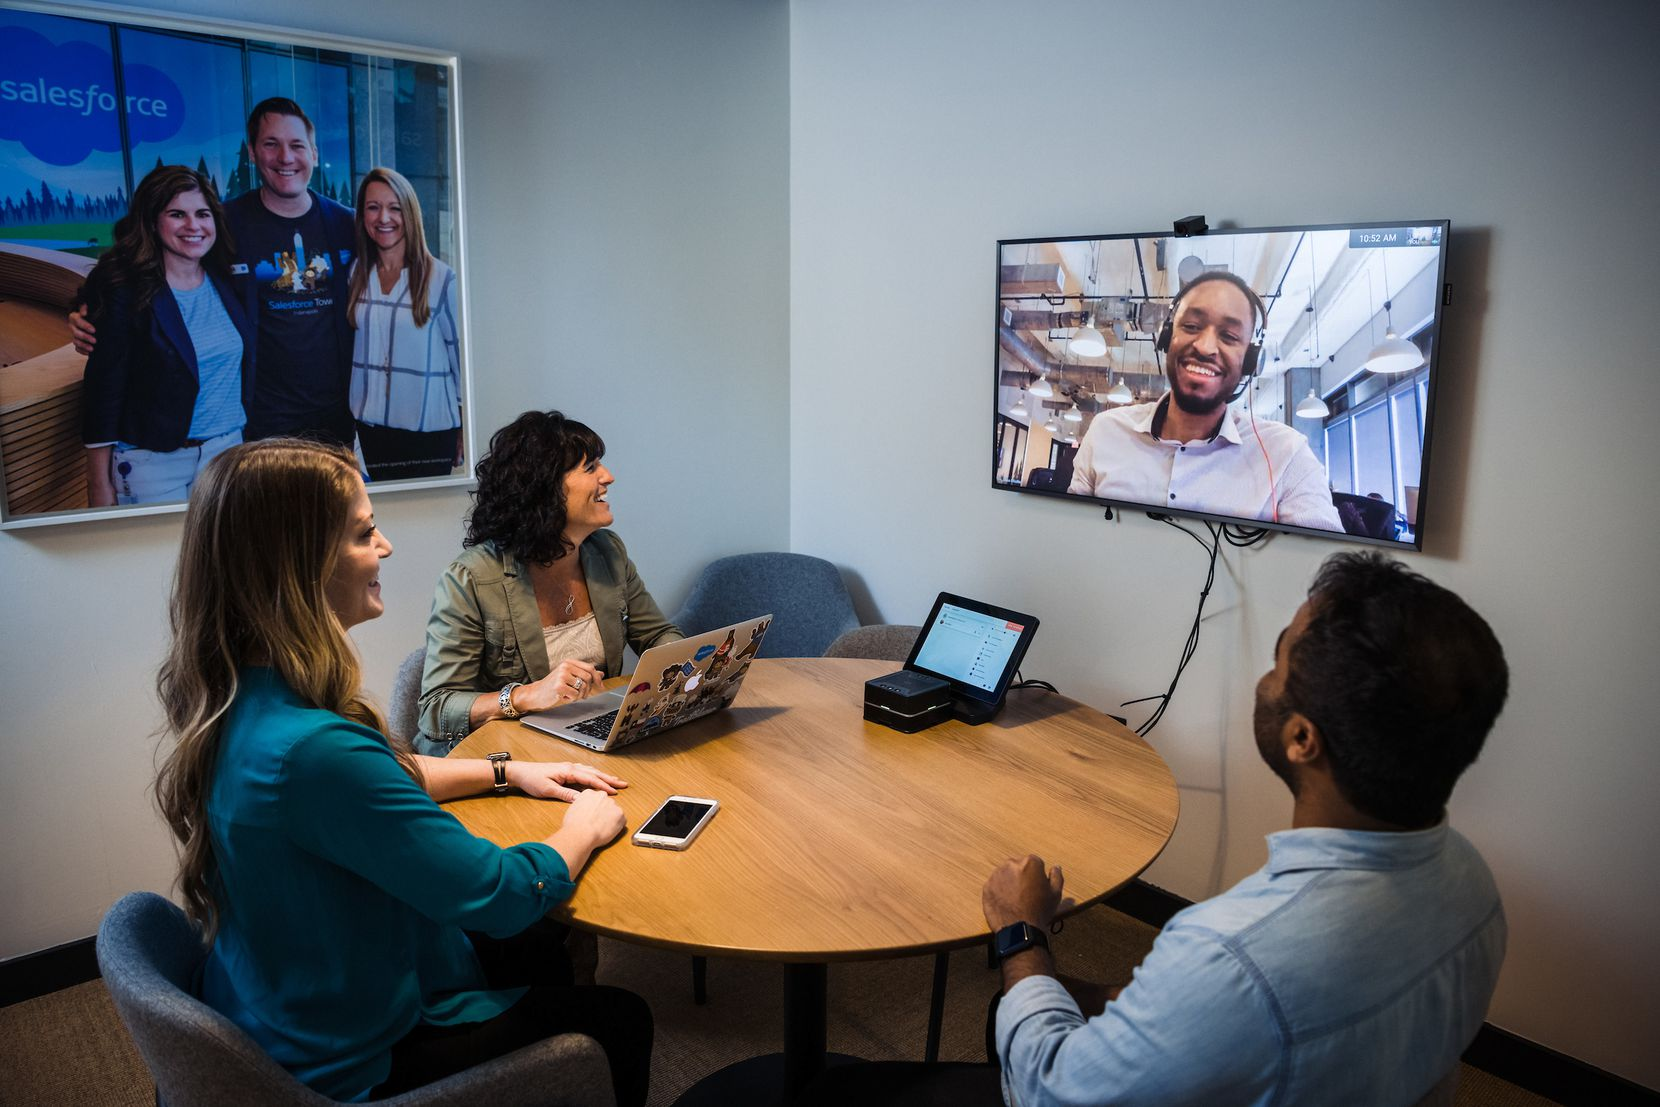 Salesforce employees catch up in a meeting that's part video, part live.